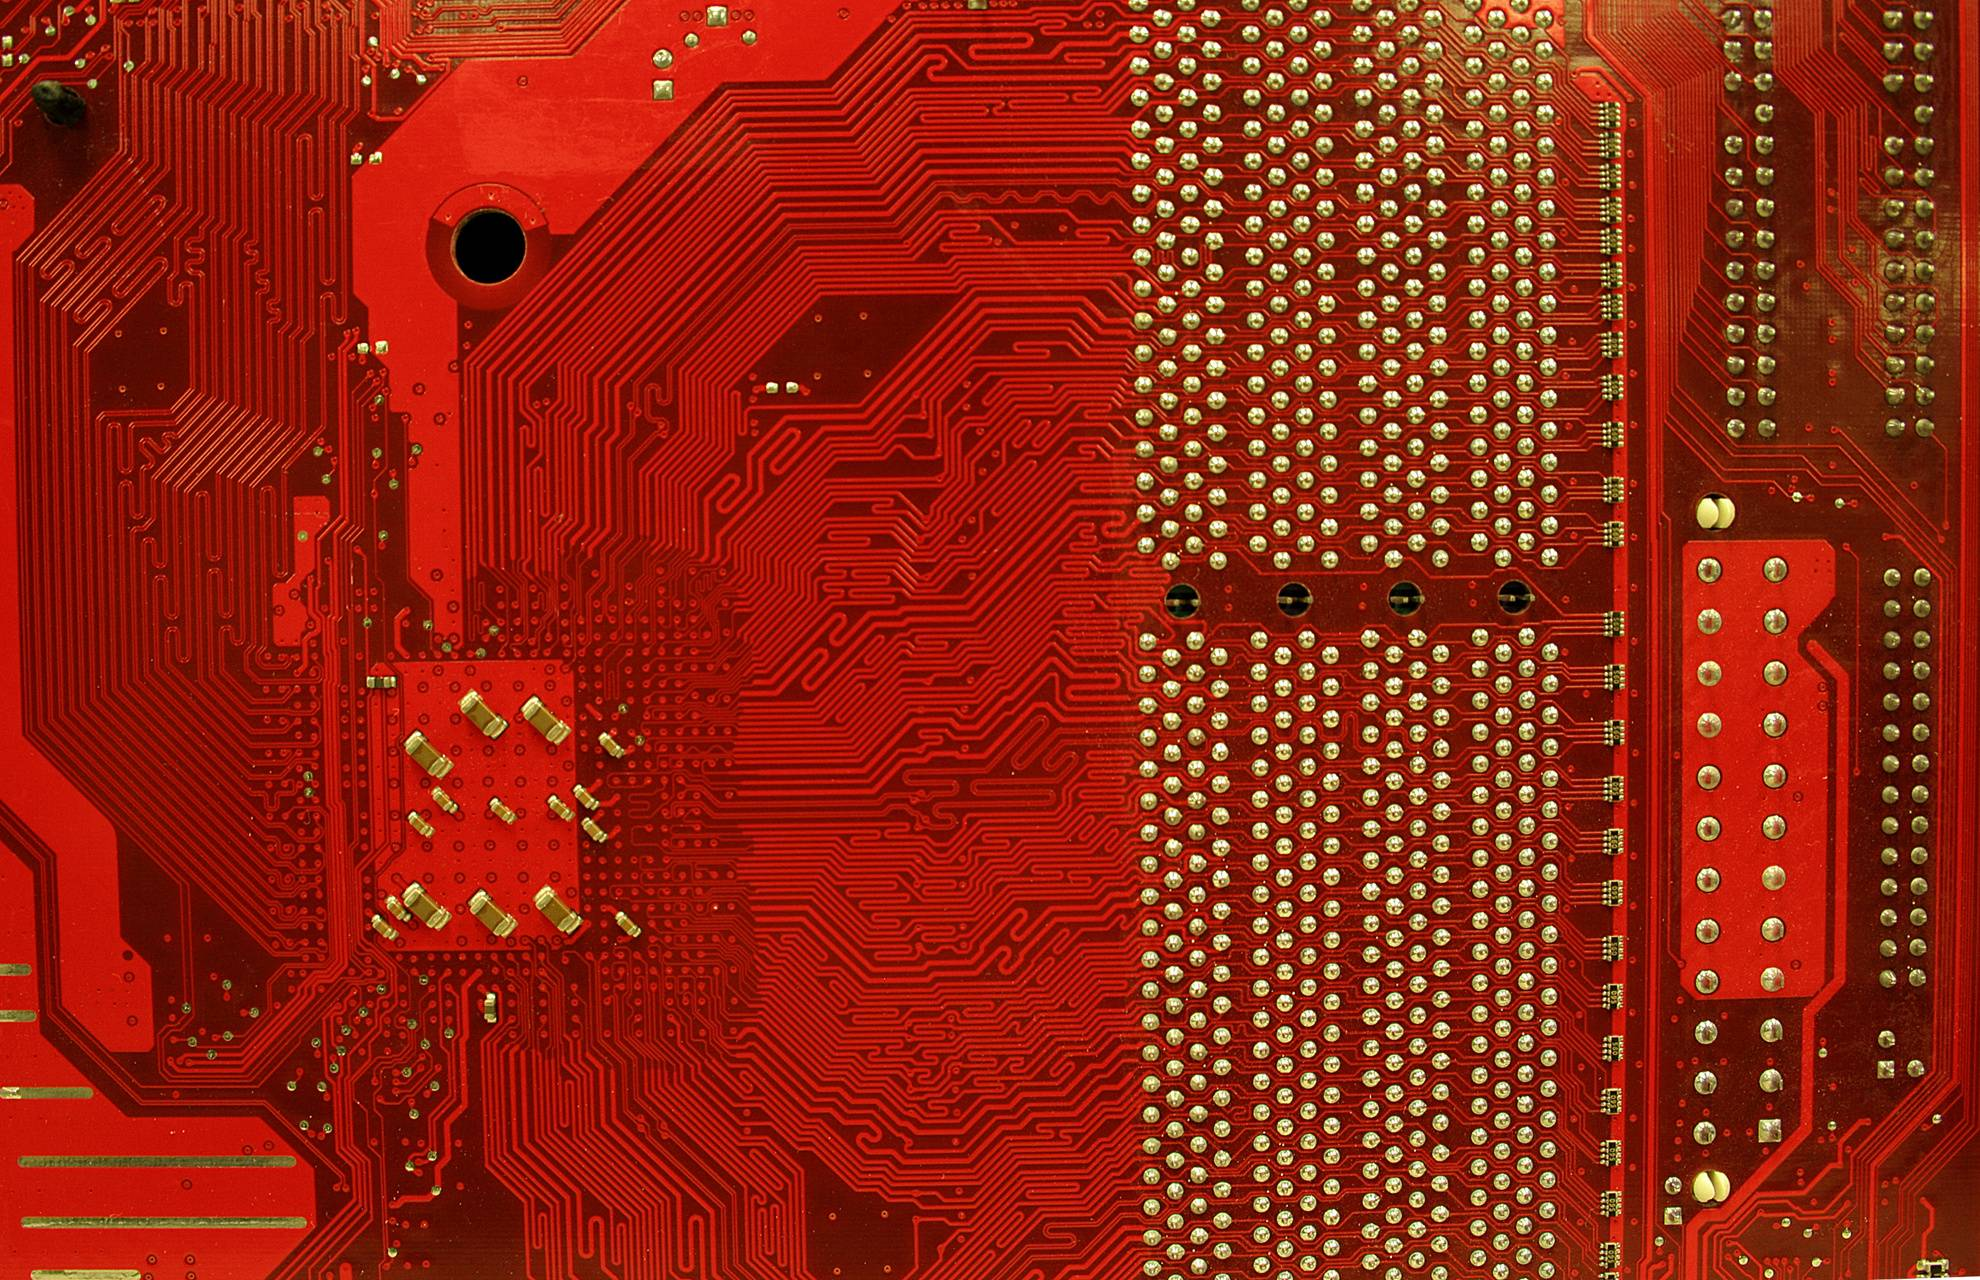 Red Motherboard